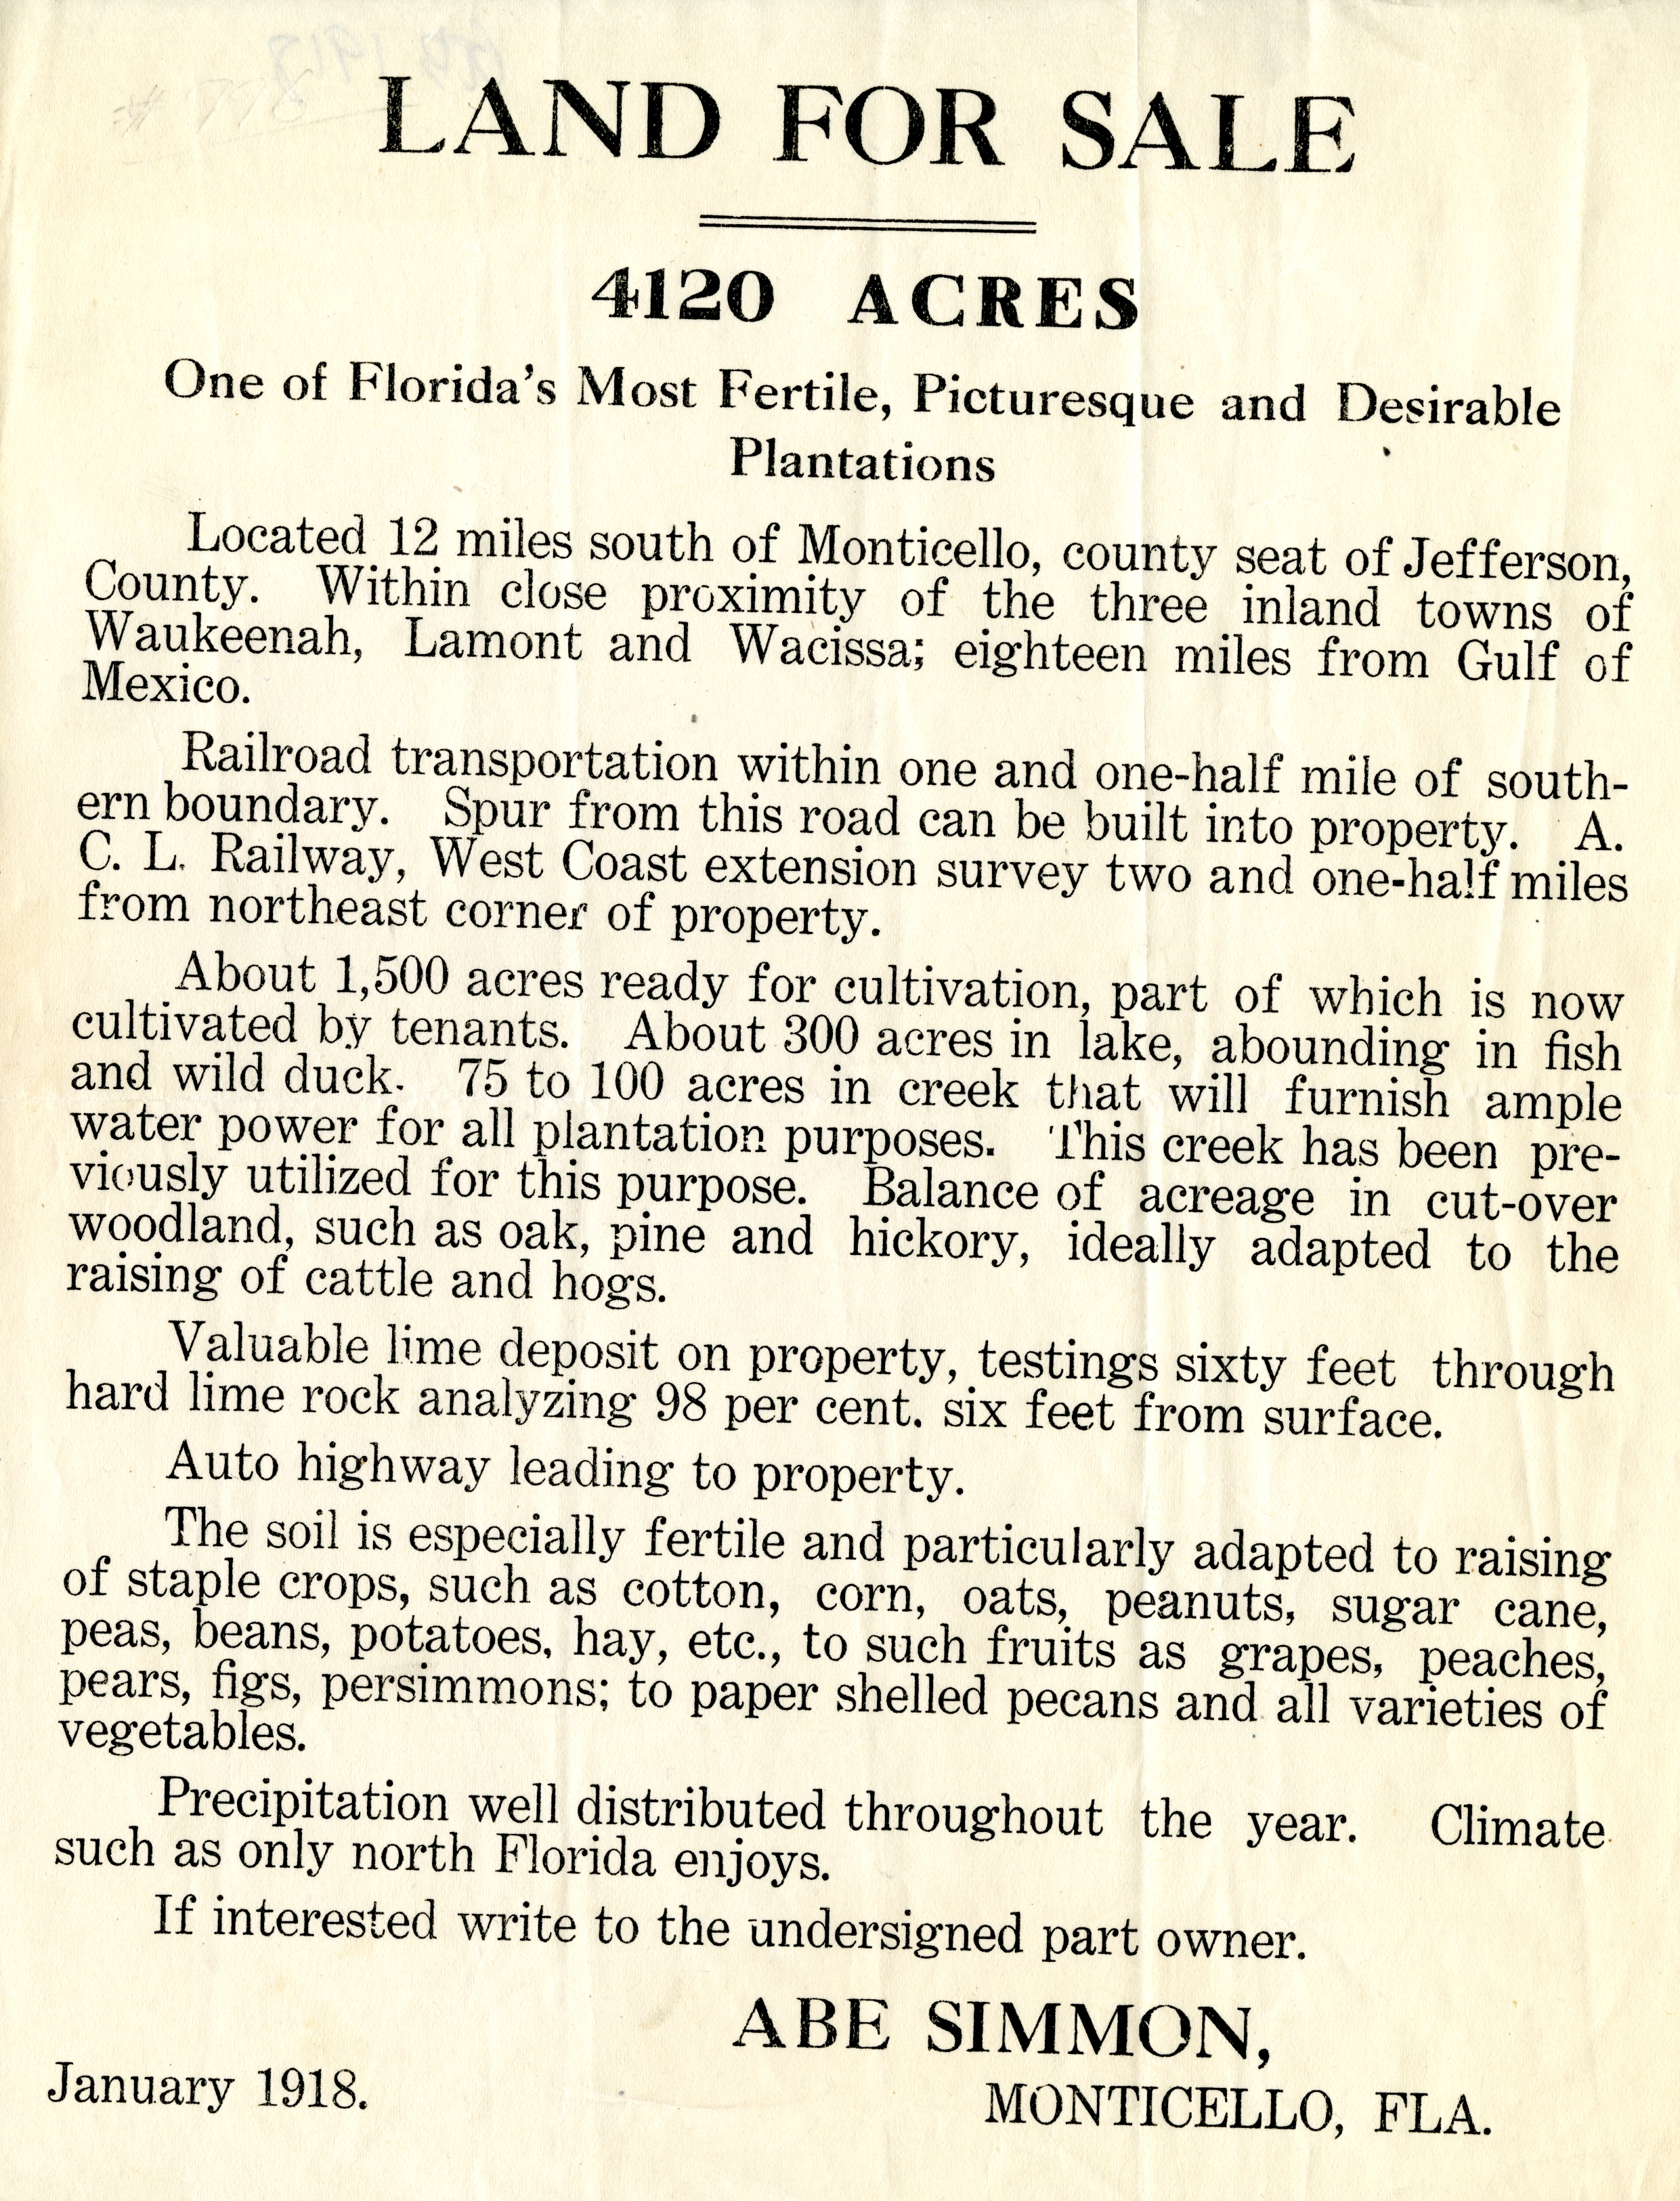 Land for sale, 4120 acres. One of Florida&#039;s most fertile, picturesque and desirable plantations.